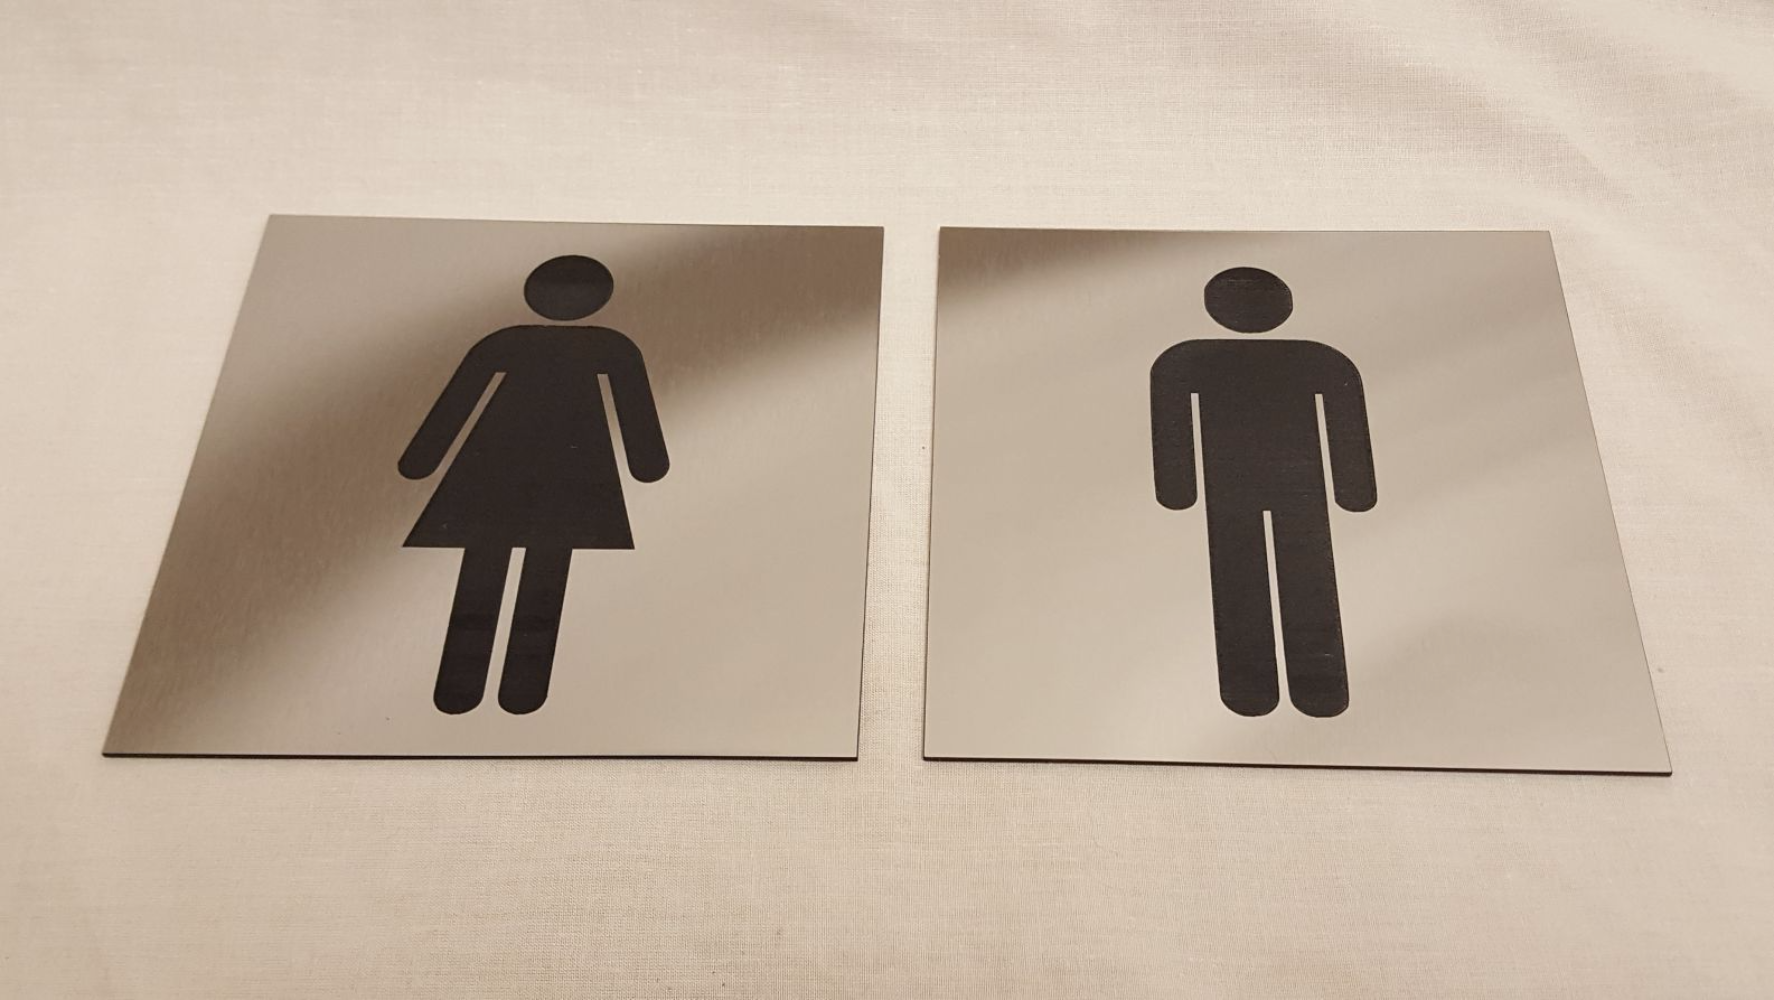 Brushed Steel Acrylic Toilet Door Signs Male And Female